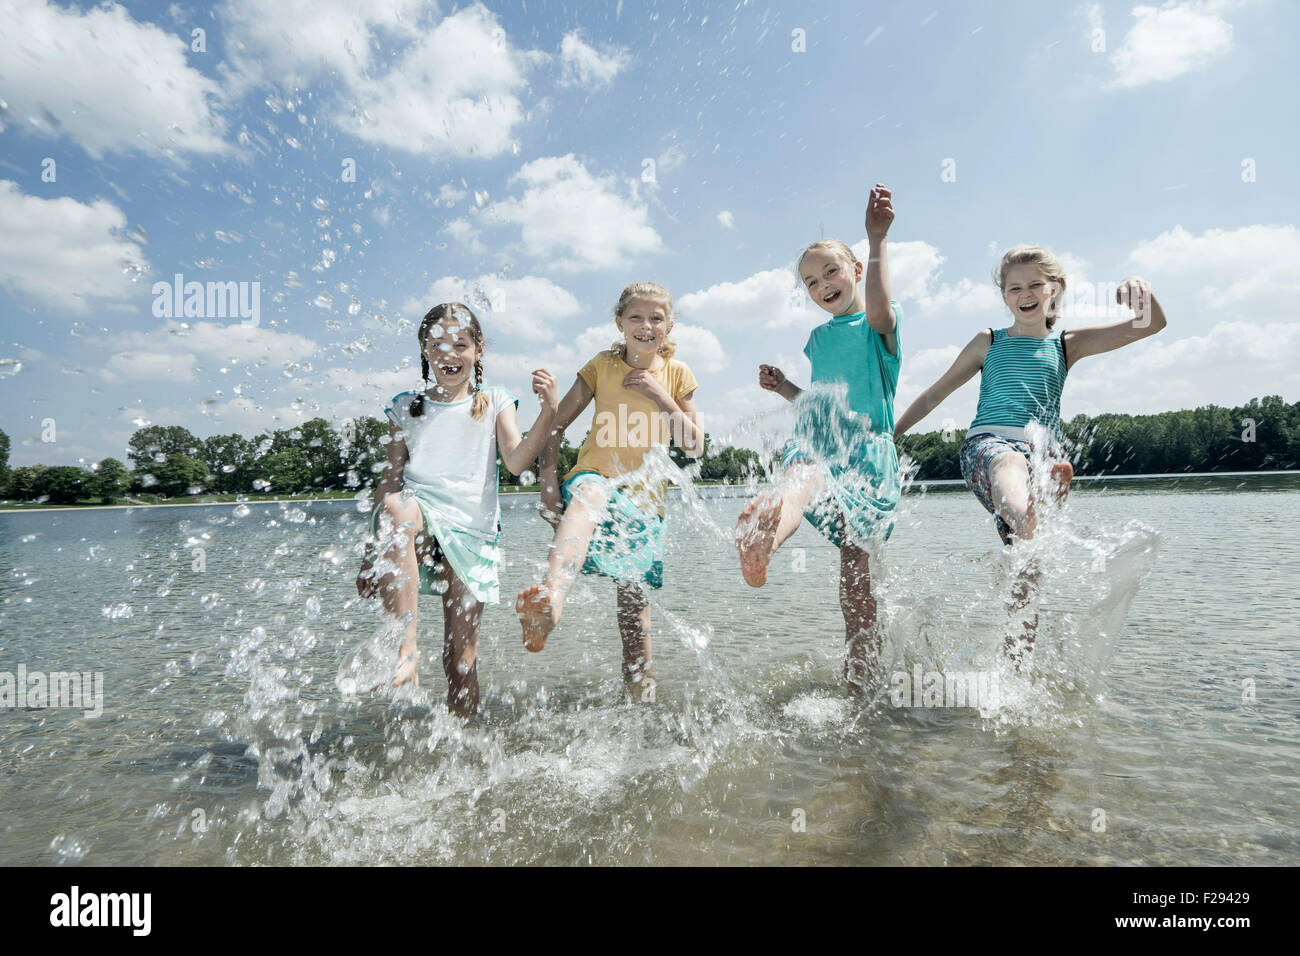 Group of friends splashing water in the lake, Bavaria, Germany - Stock Image